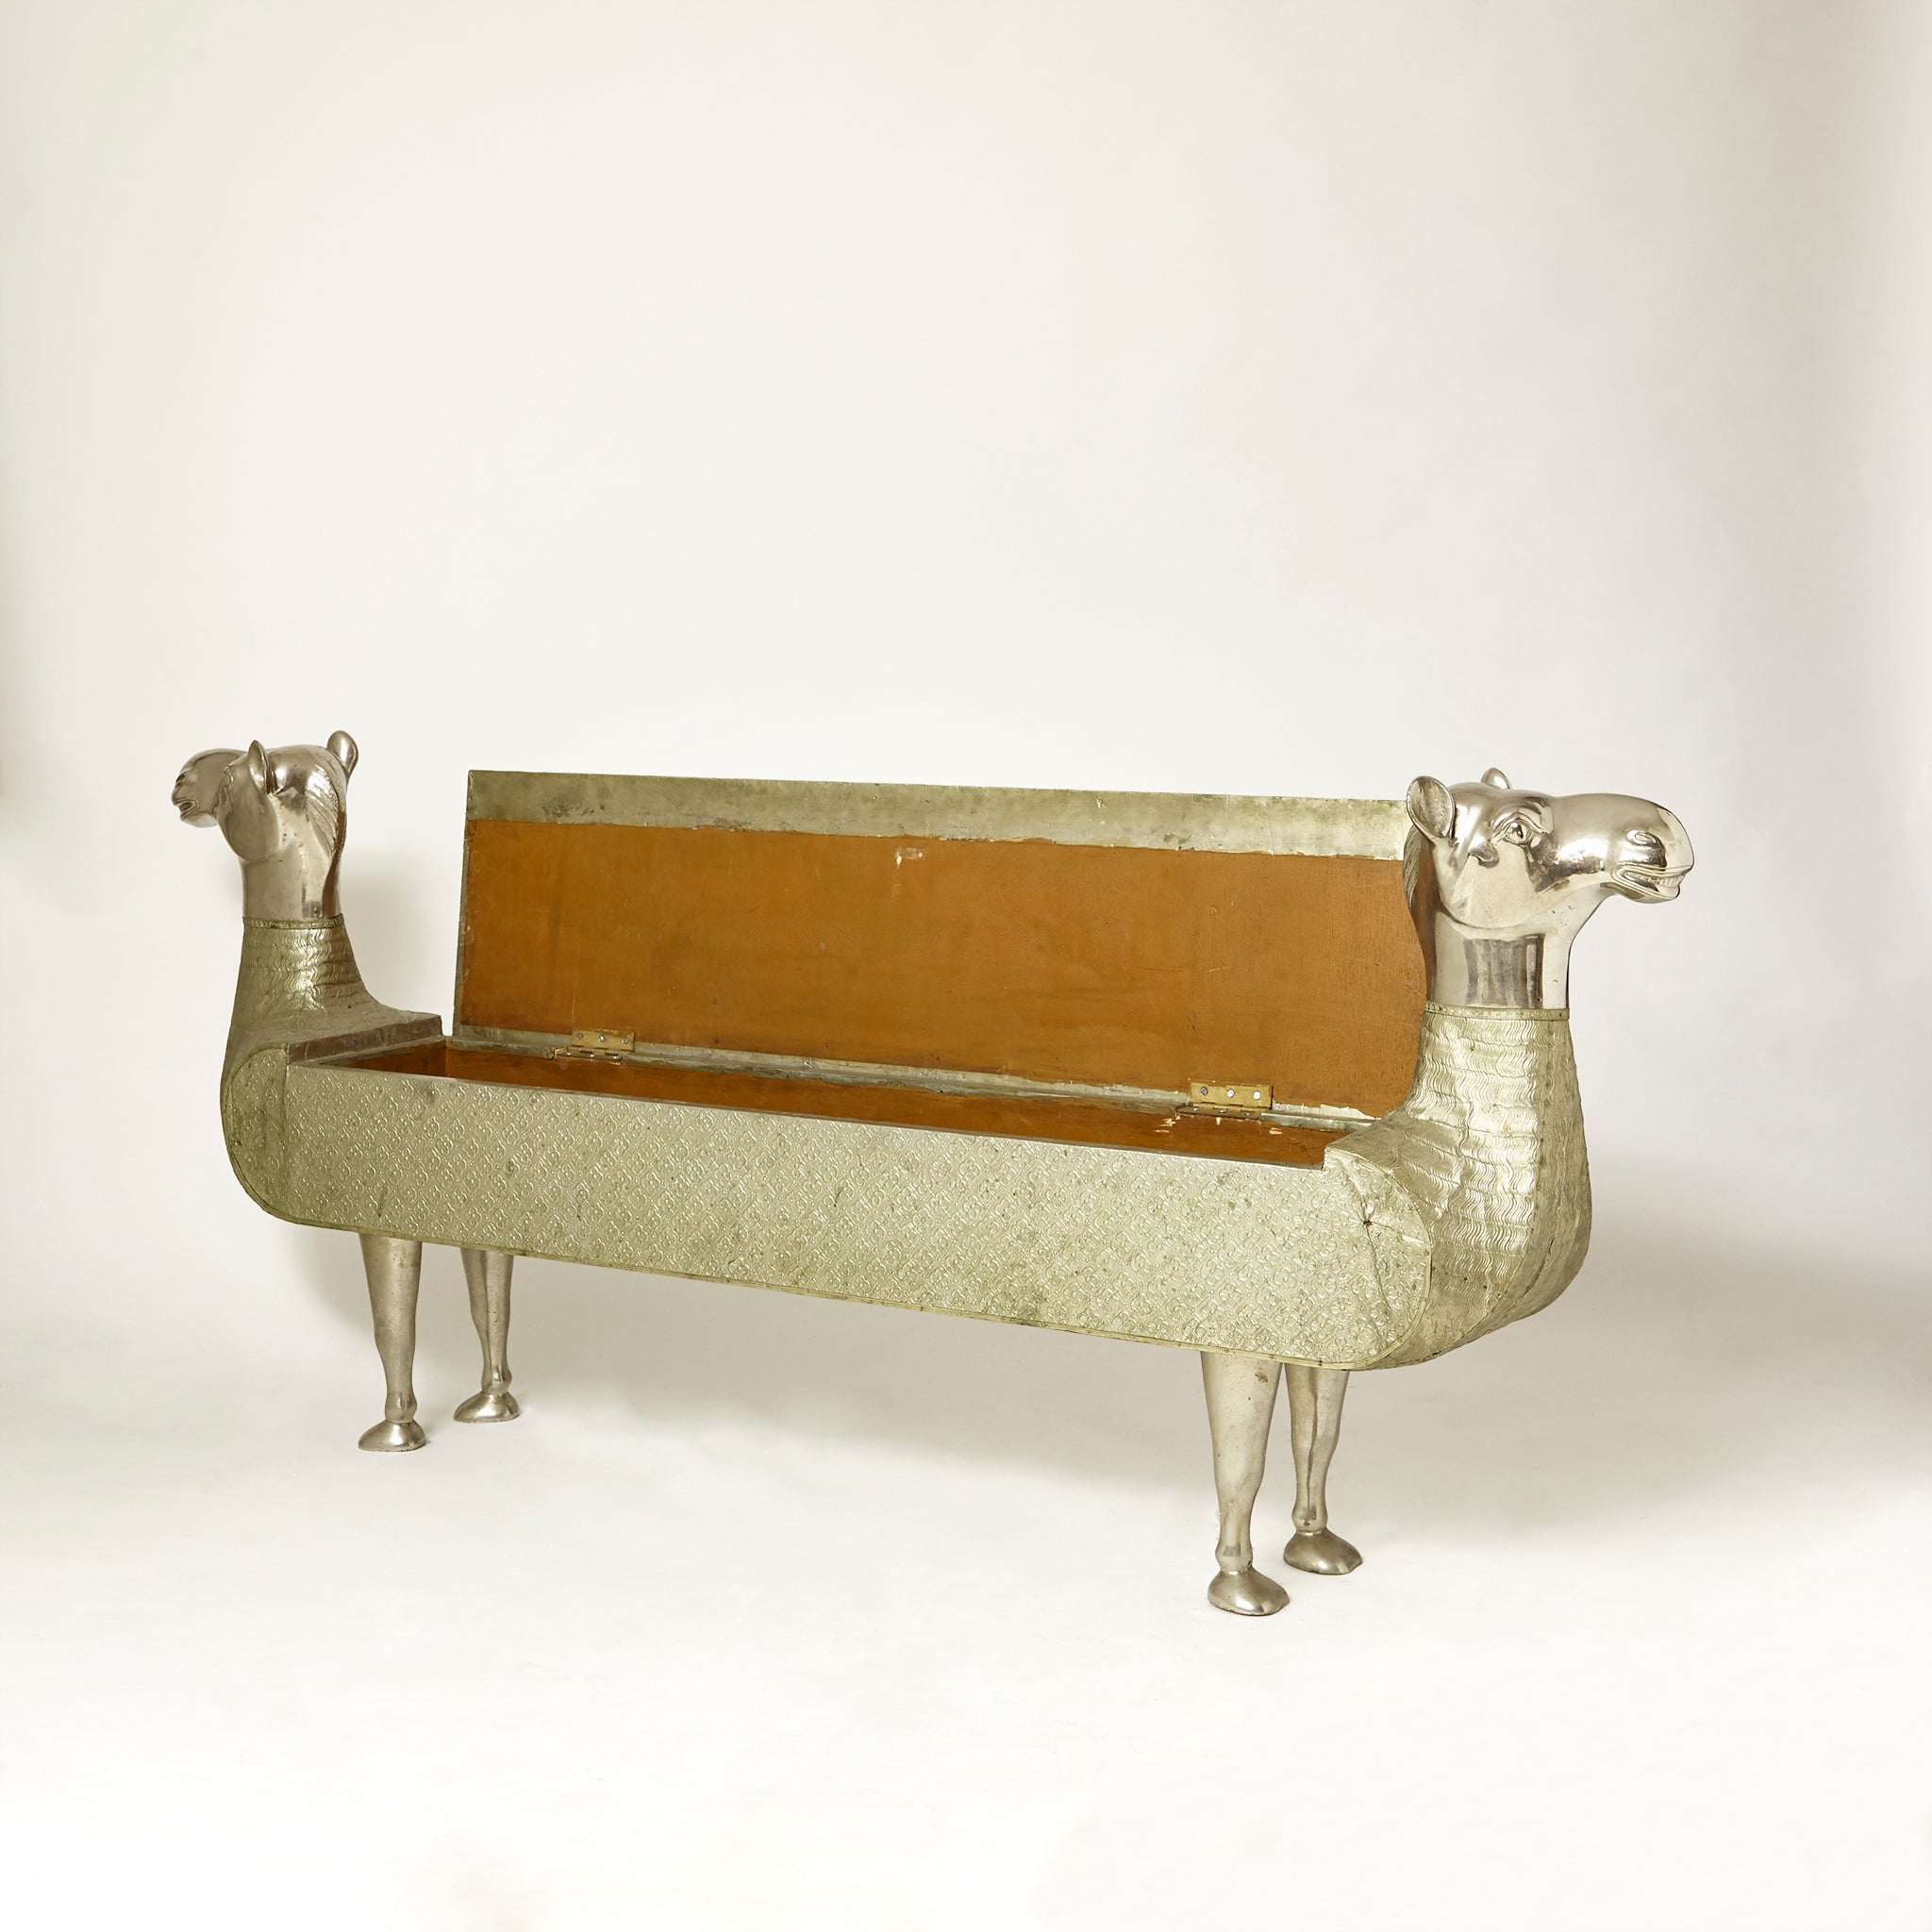 1970's  whimsical camel bench with internal storage.